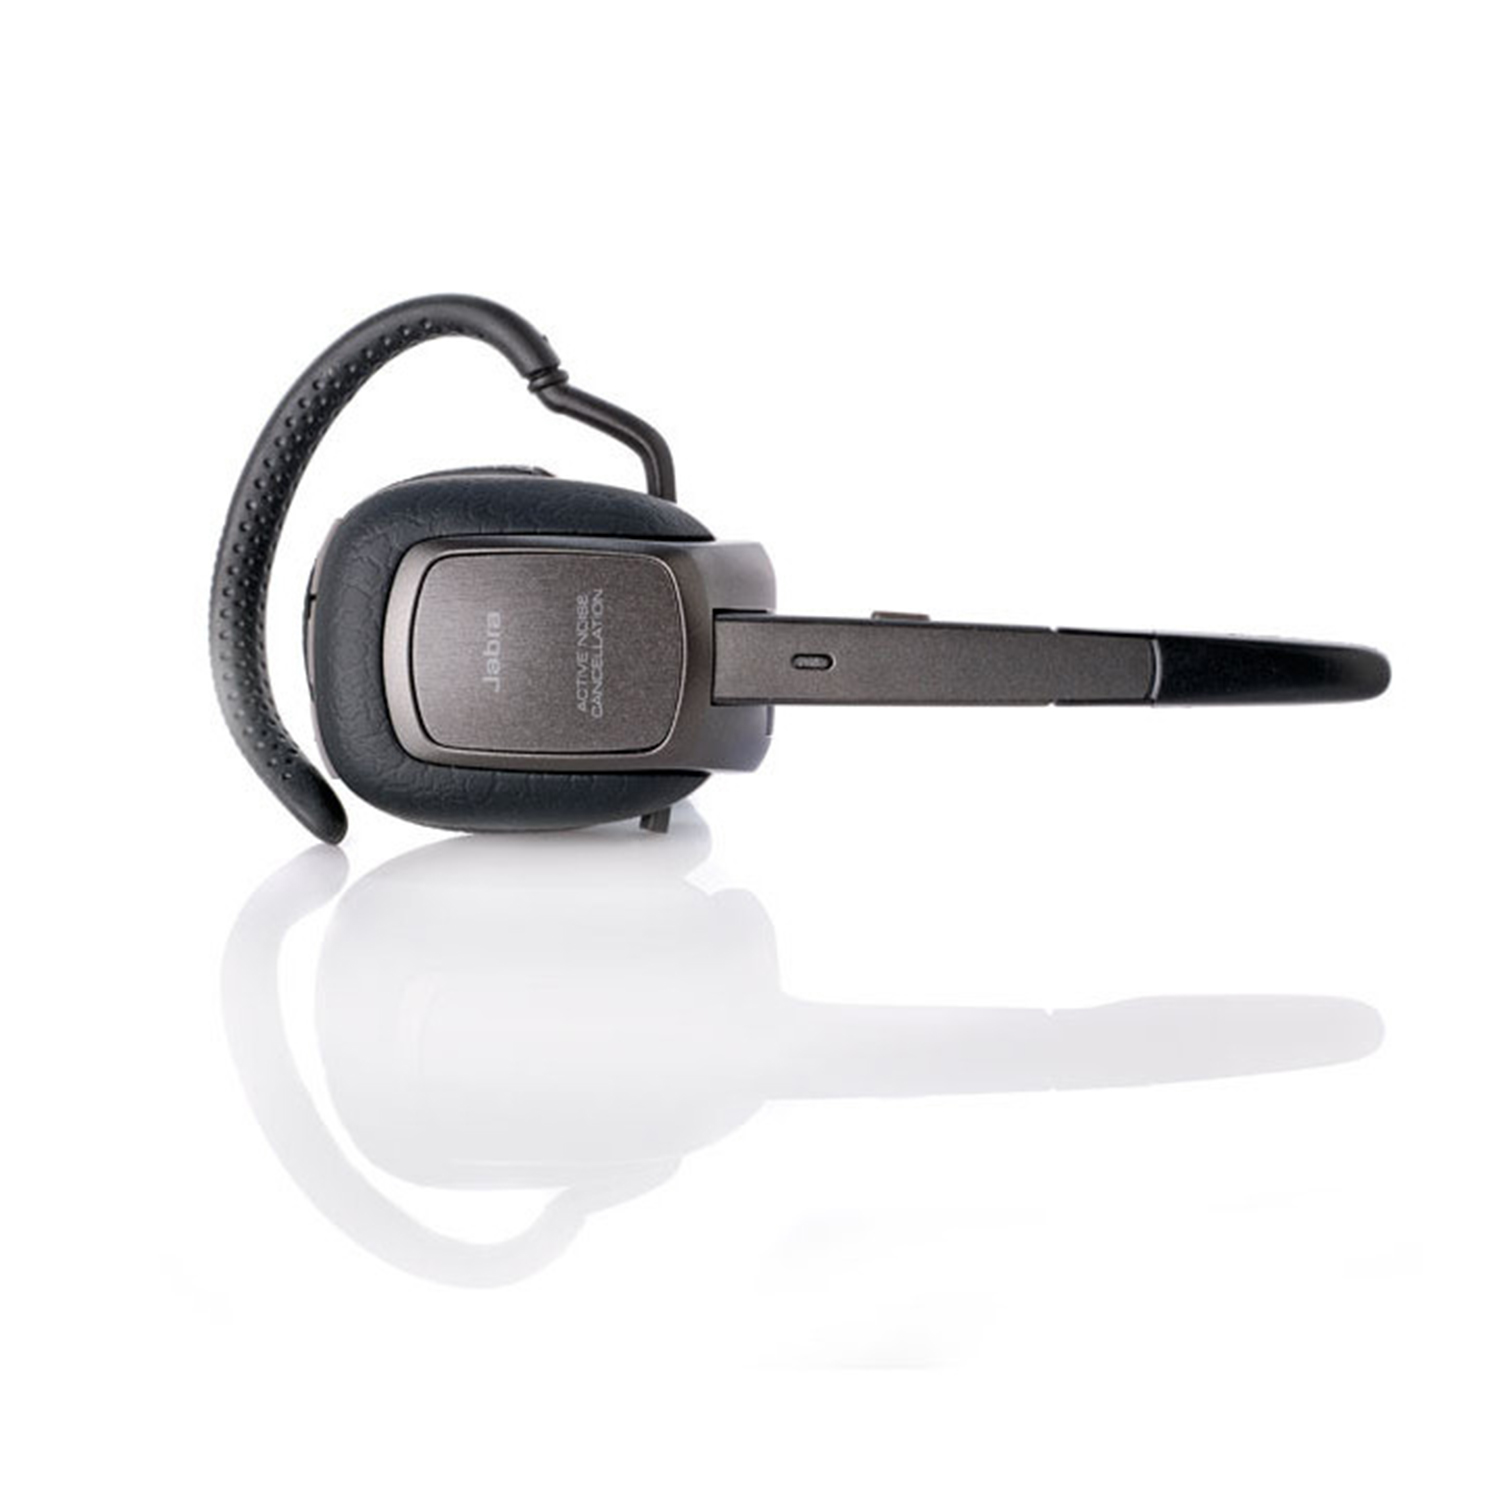 GN Jabra Supreme UC Bluetooth Headset